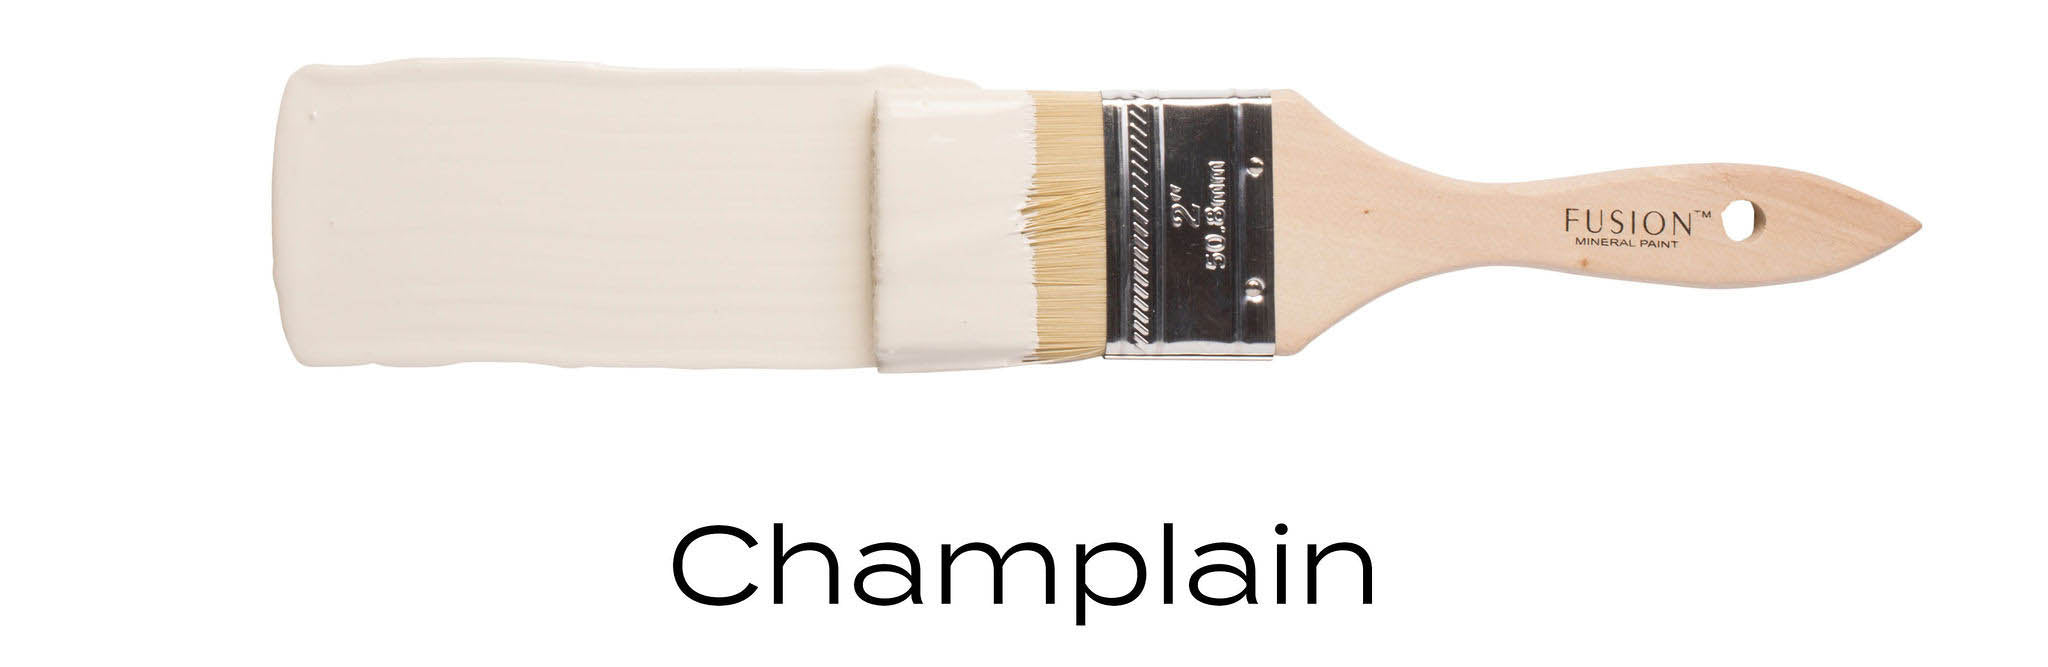 Champlain Fusion Mineral Paint Furniture Paint Colour Example, No Prep or top coat needed, UK Stockist